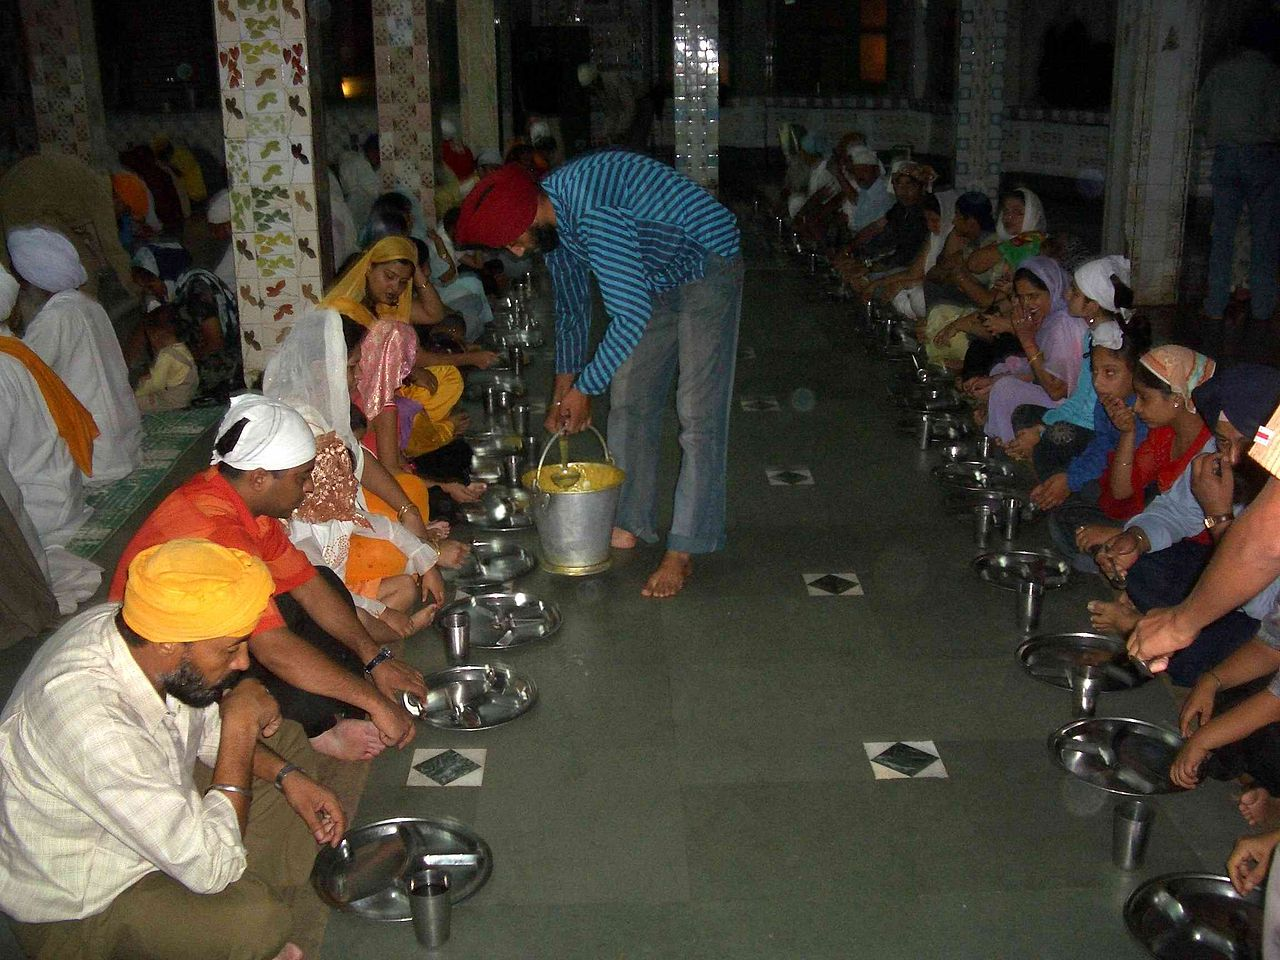 Dinner at Manikaran Gurdwara, Himachal Pradesh, India